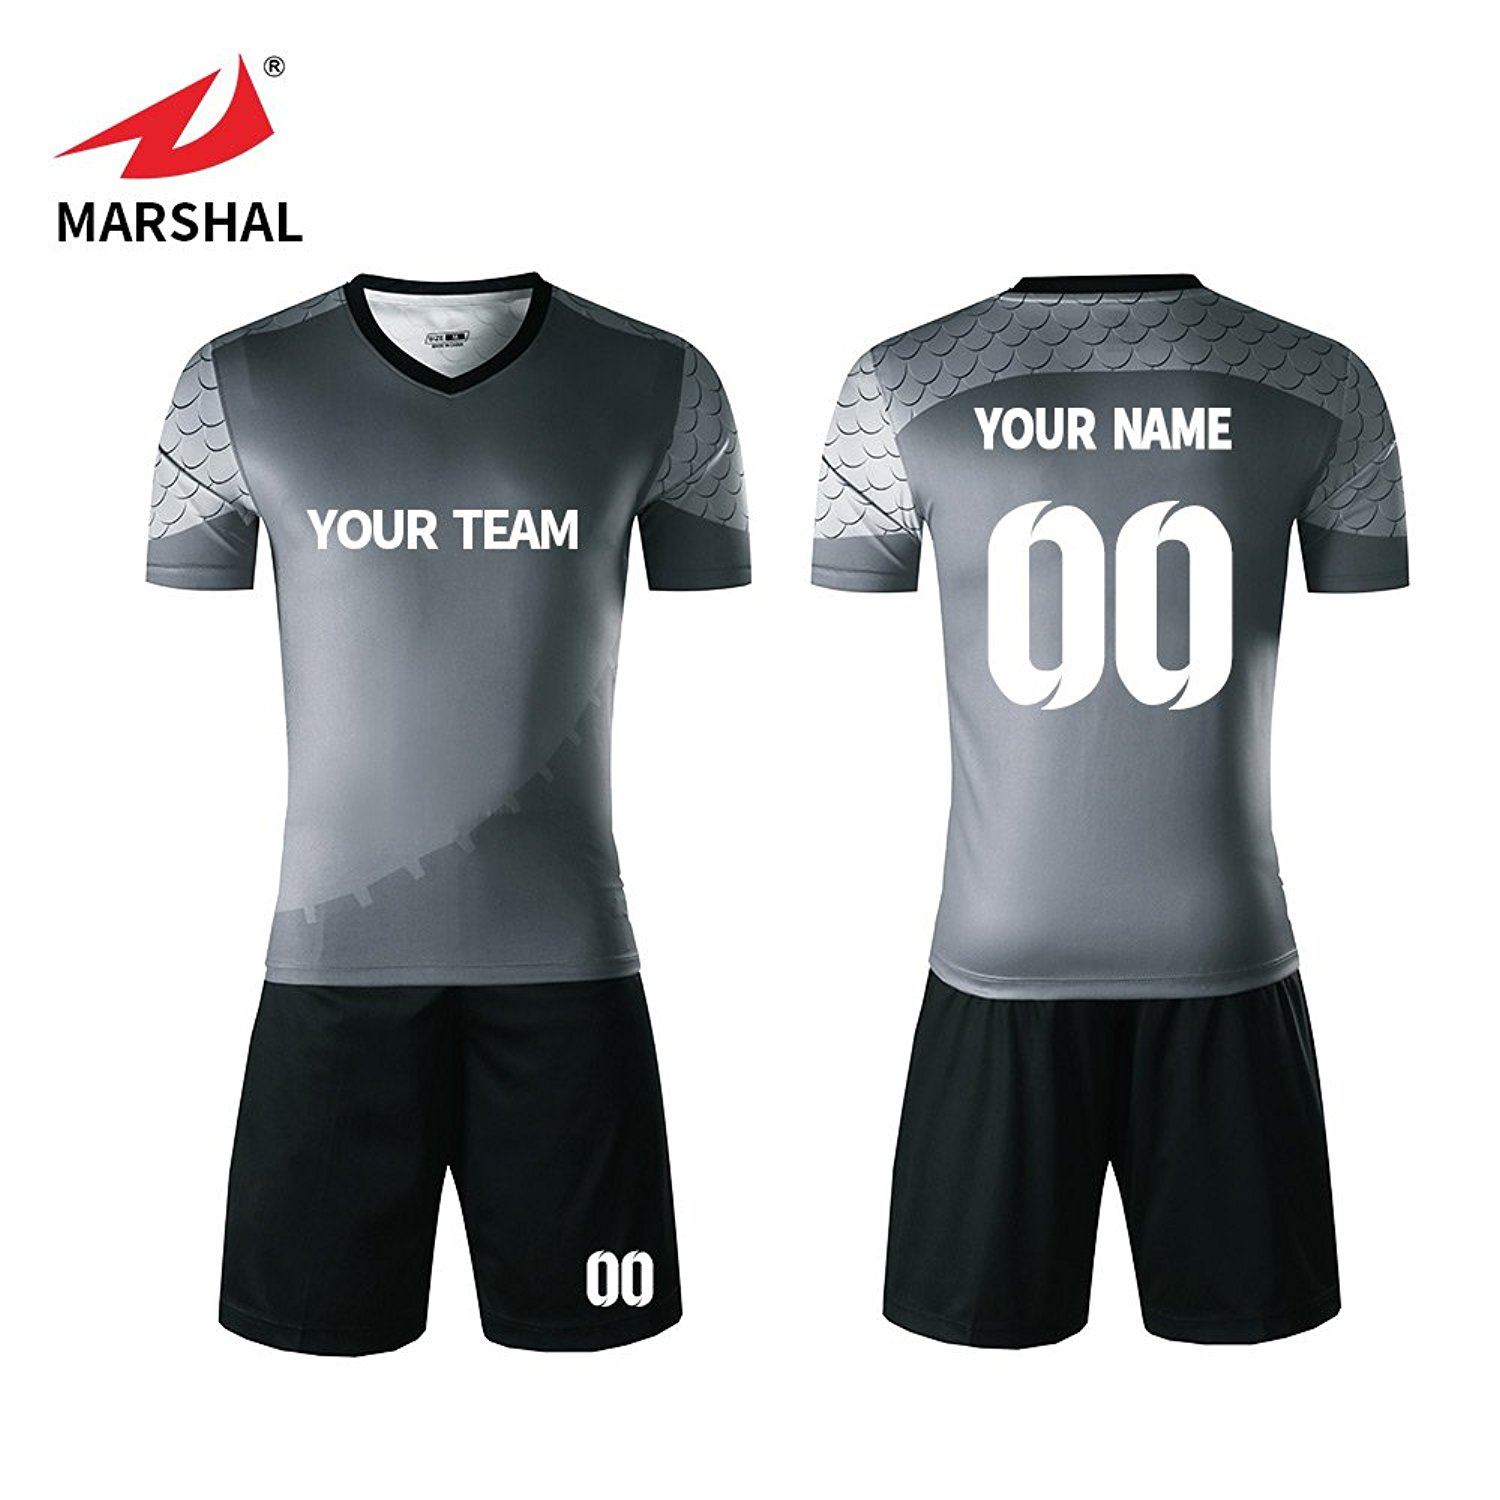 bfe4bfc51 Get Quotations · Marshal Jersey Custom Soccer Jersey Grey Jersey Soccer  Uniforms Custom Team Jersey Numbers, Your Name